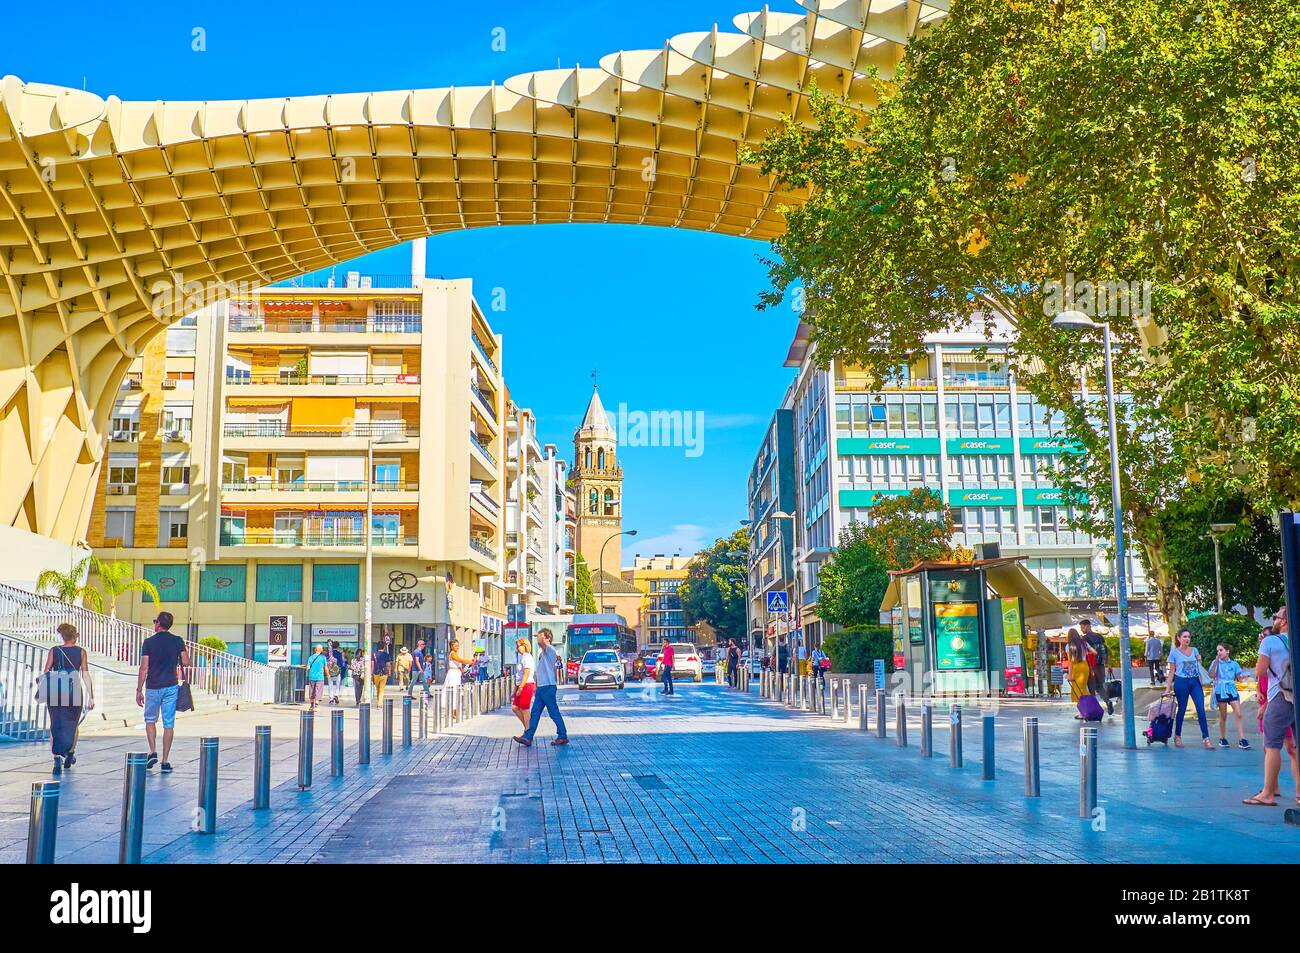 SEVILLE, SPAIN - OCTOBER 1, 2019: Metropol Parasol construction fits well in historical neighborhood and dominates the busy Imagen street, on October Stock Photo